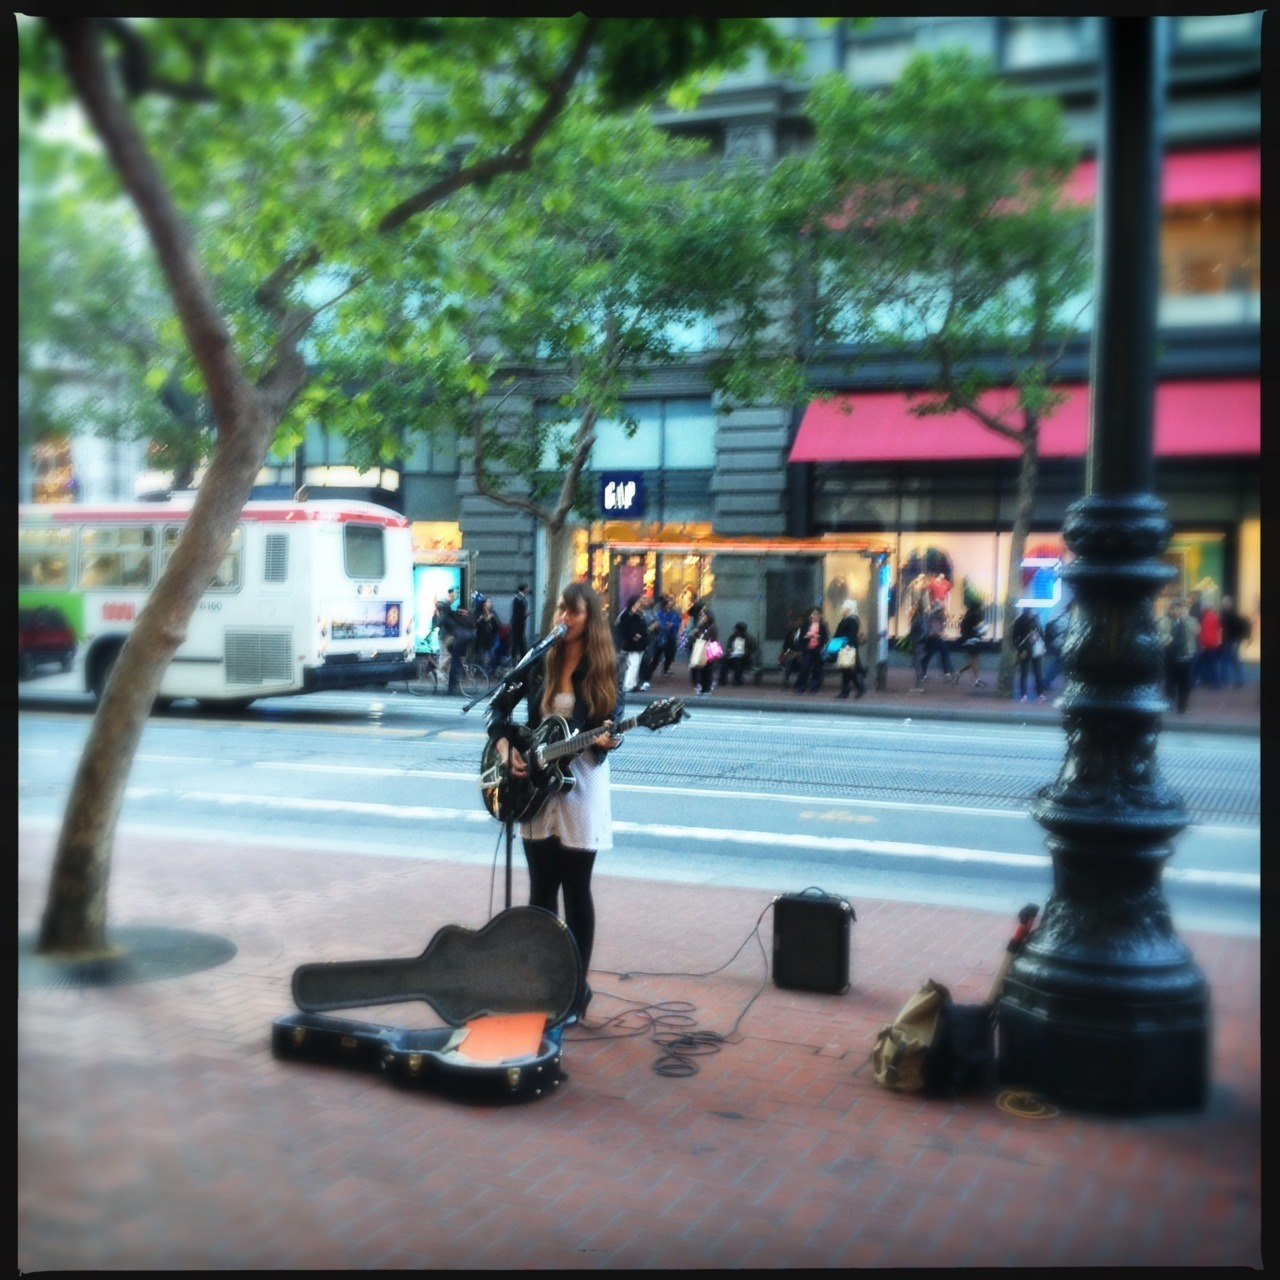 My favorite local singer Loftus Lens, DC Film, No Flash, Taken with Hipstamatic